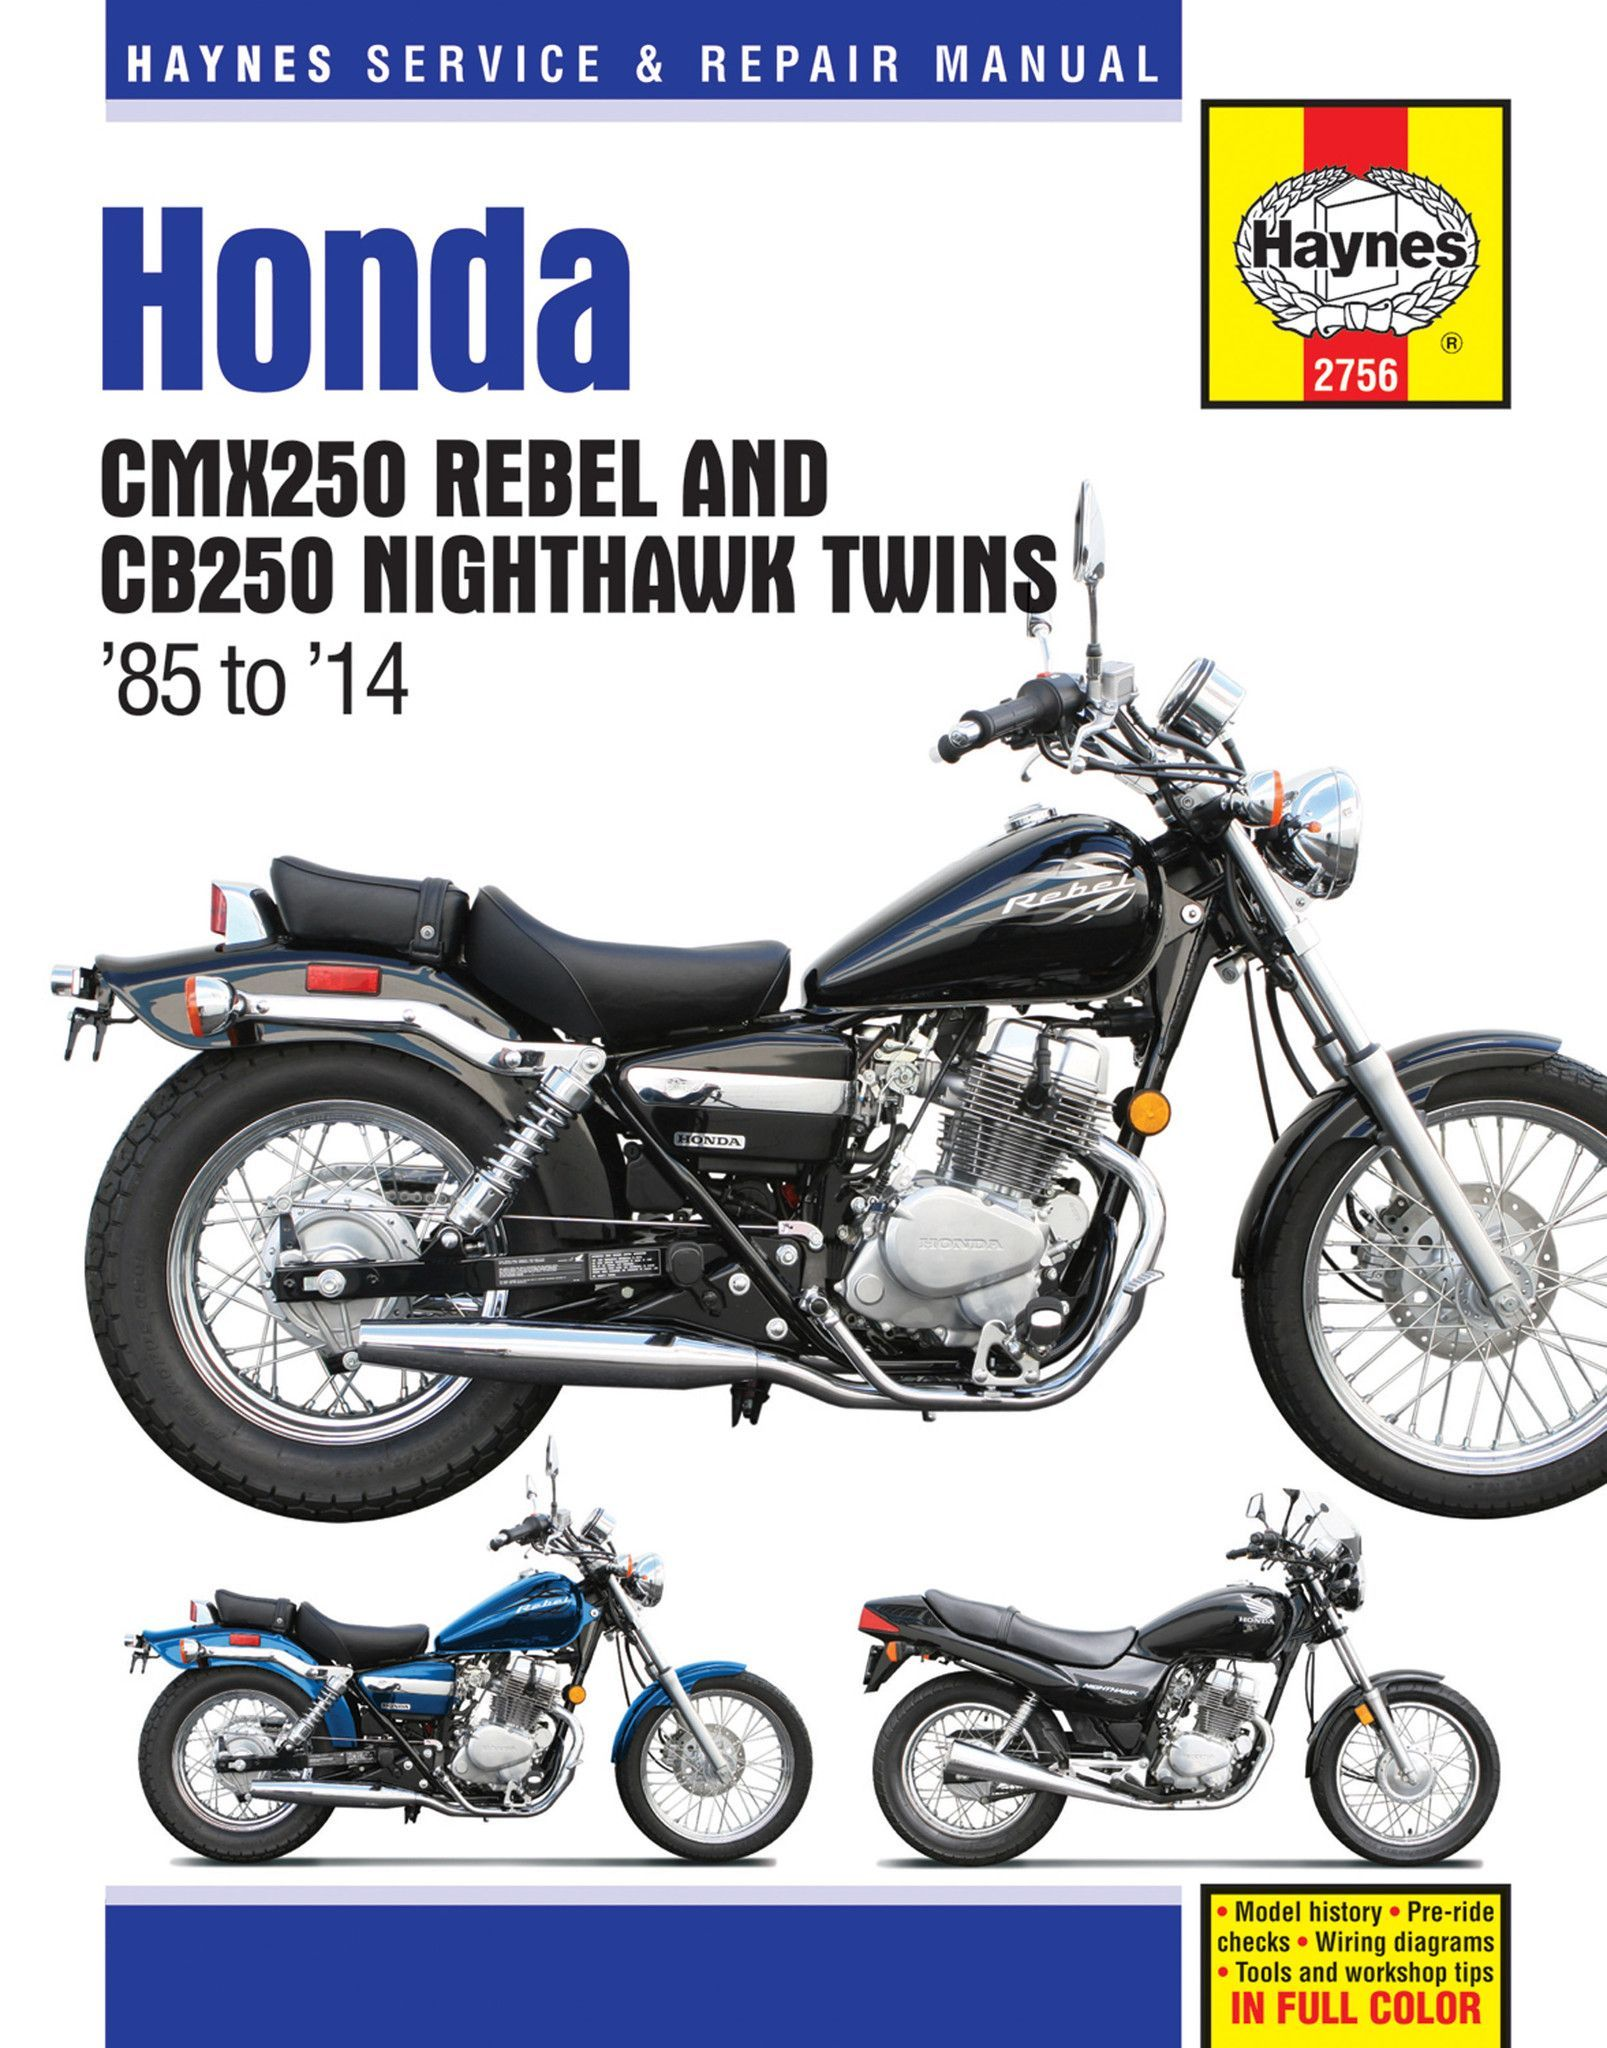 Wiring Diagram Rebel 86 Cmx250honda Library 2010 Honda Haynes Service Repair Manual Part Number M2756 Step By Procedures